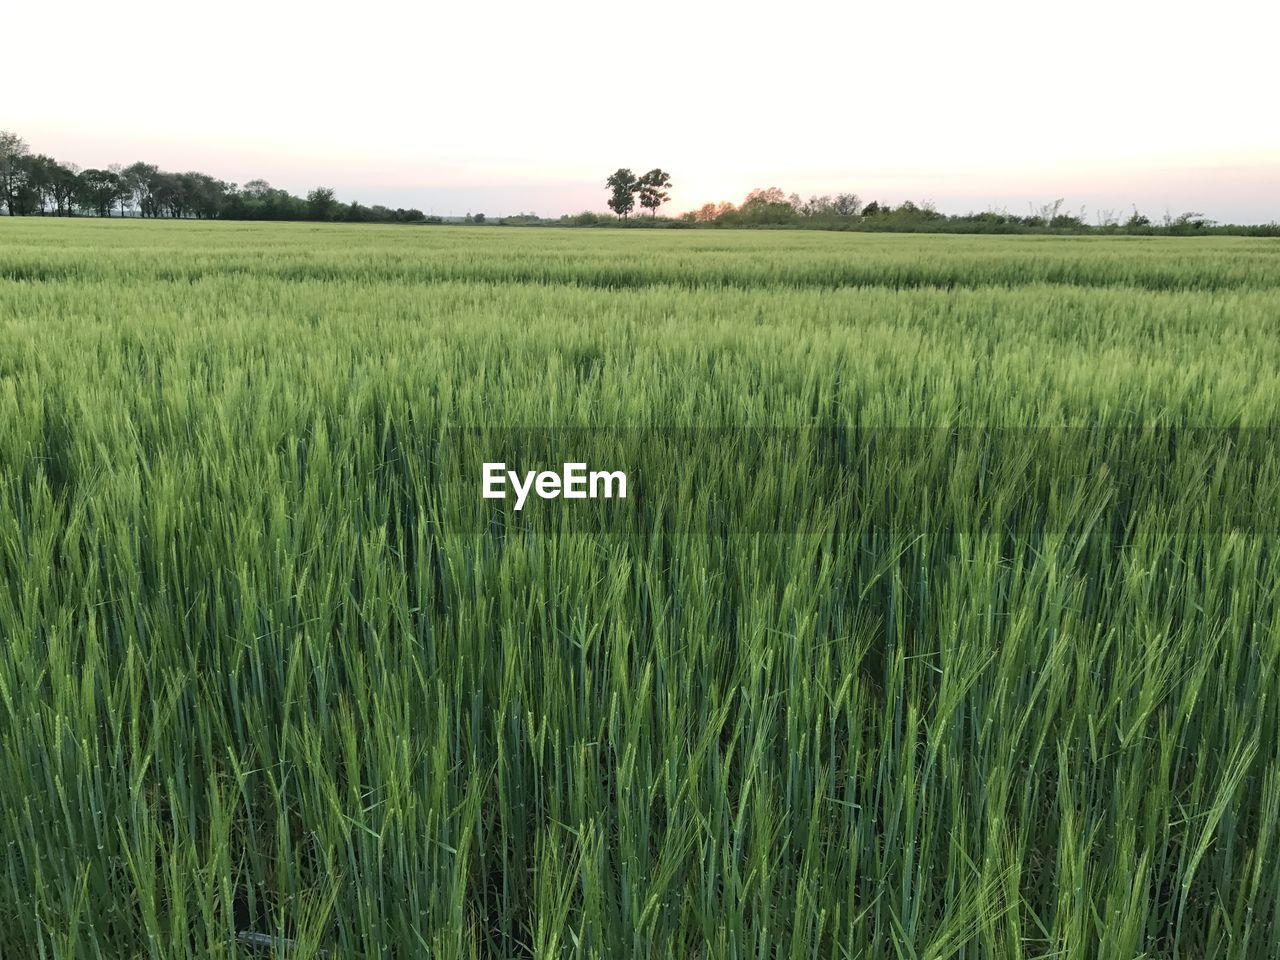 agriculture, field, growth, nature, landscape, farm, crop, tranquility, beauty in nature, tranquil scene, green color, cereal plant, no people, rural scene, outdoors, scenics, plant, day, clear sky, grass, wheat, sky, rice paddy, tree